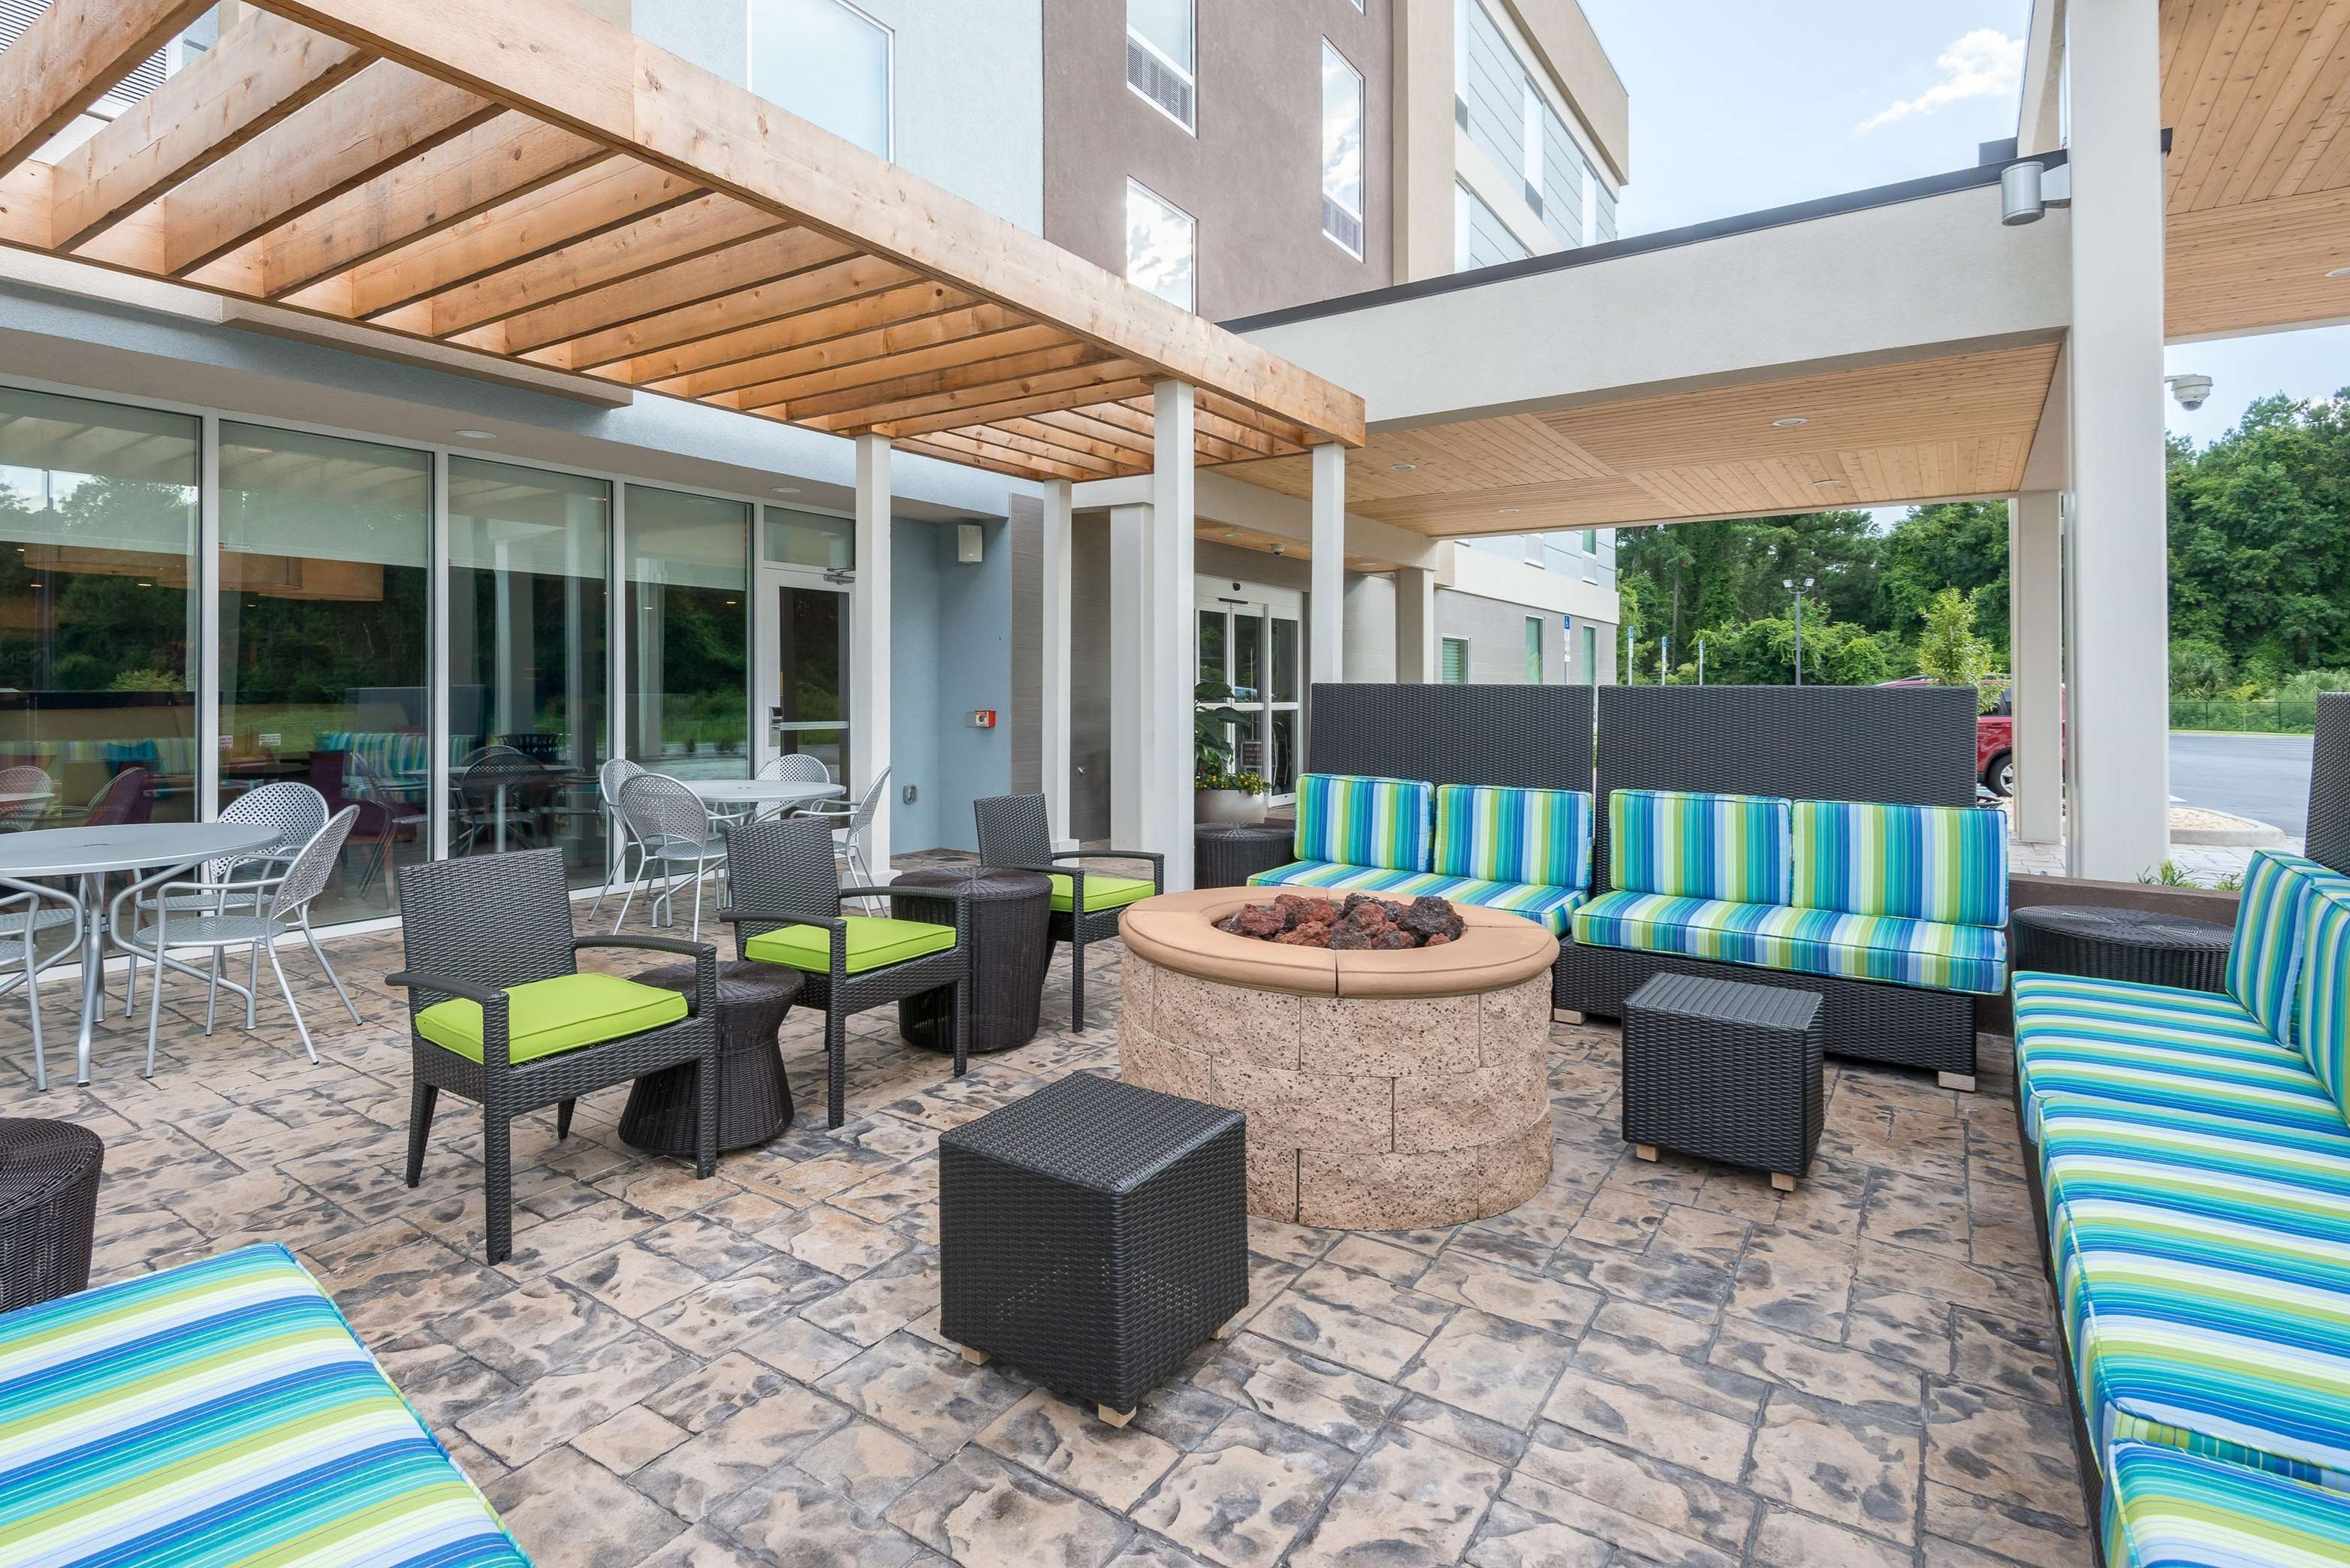 Home2 Suites by Hilton Lake City image 17